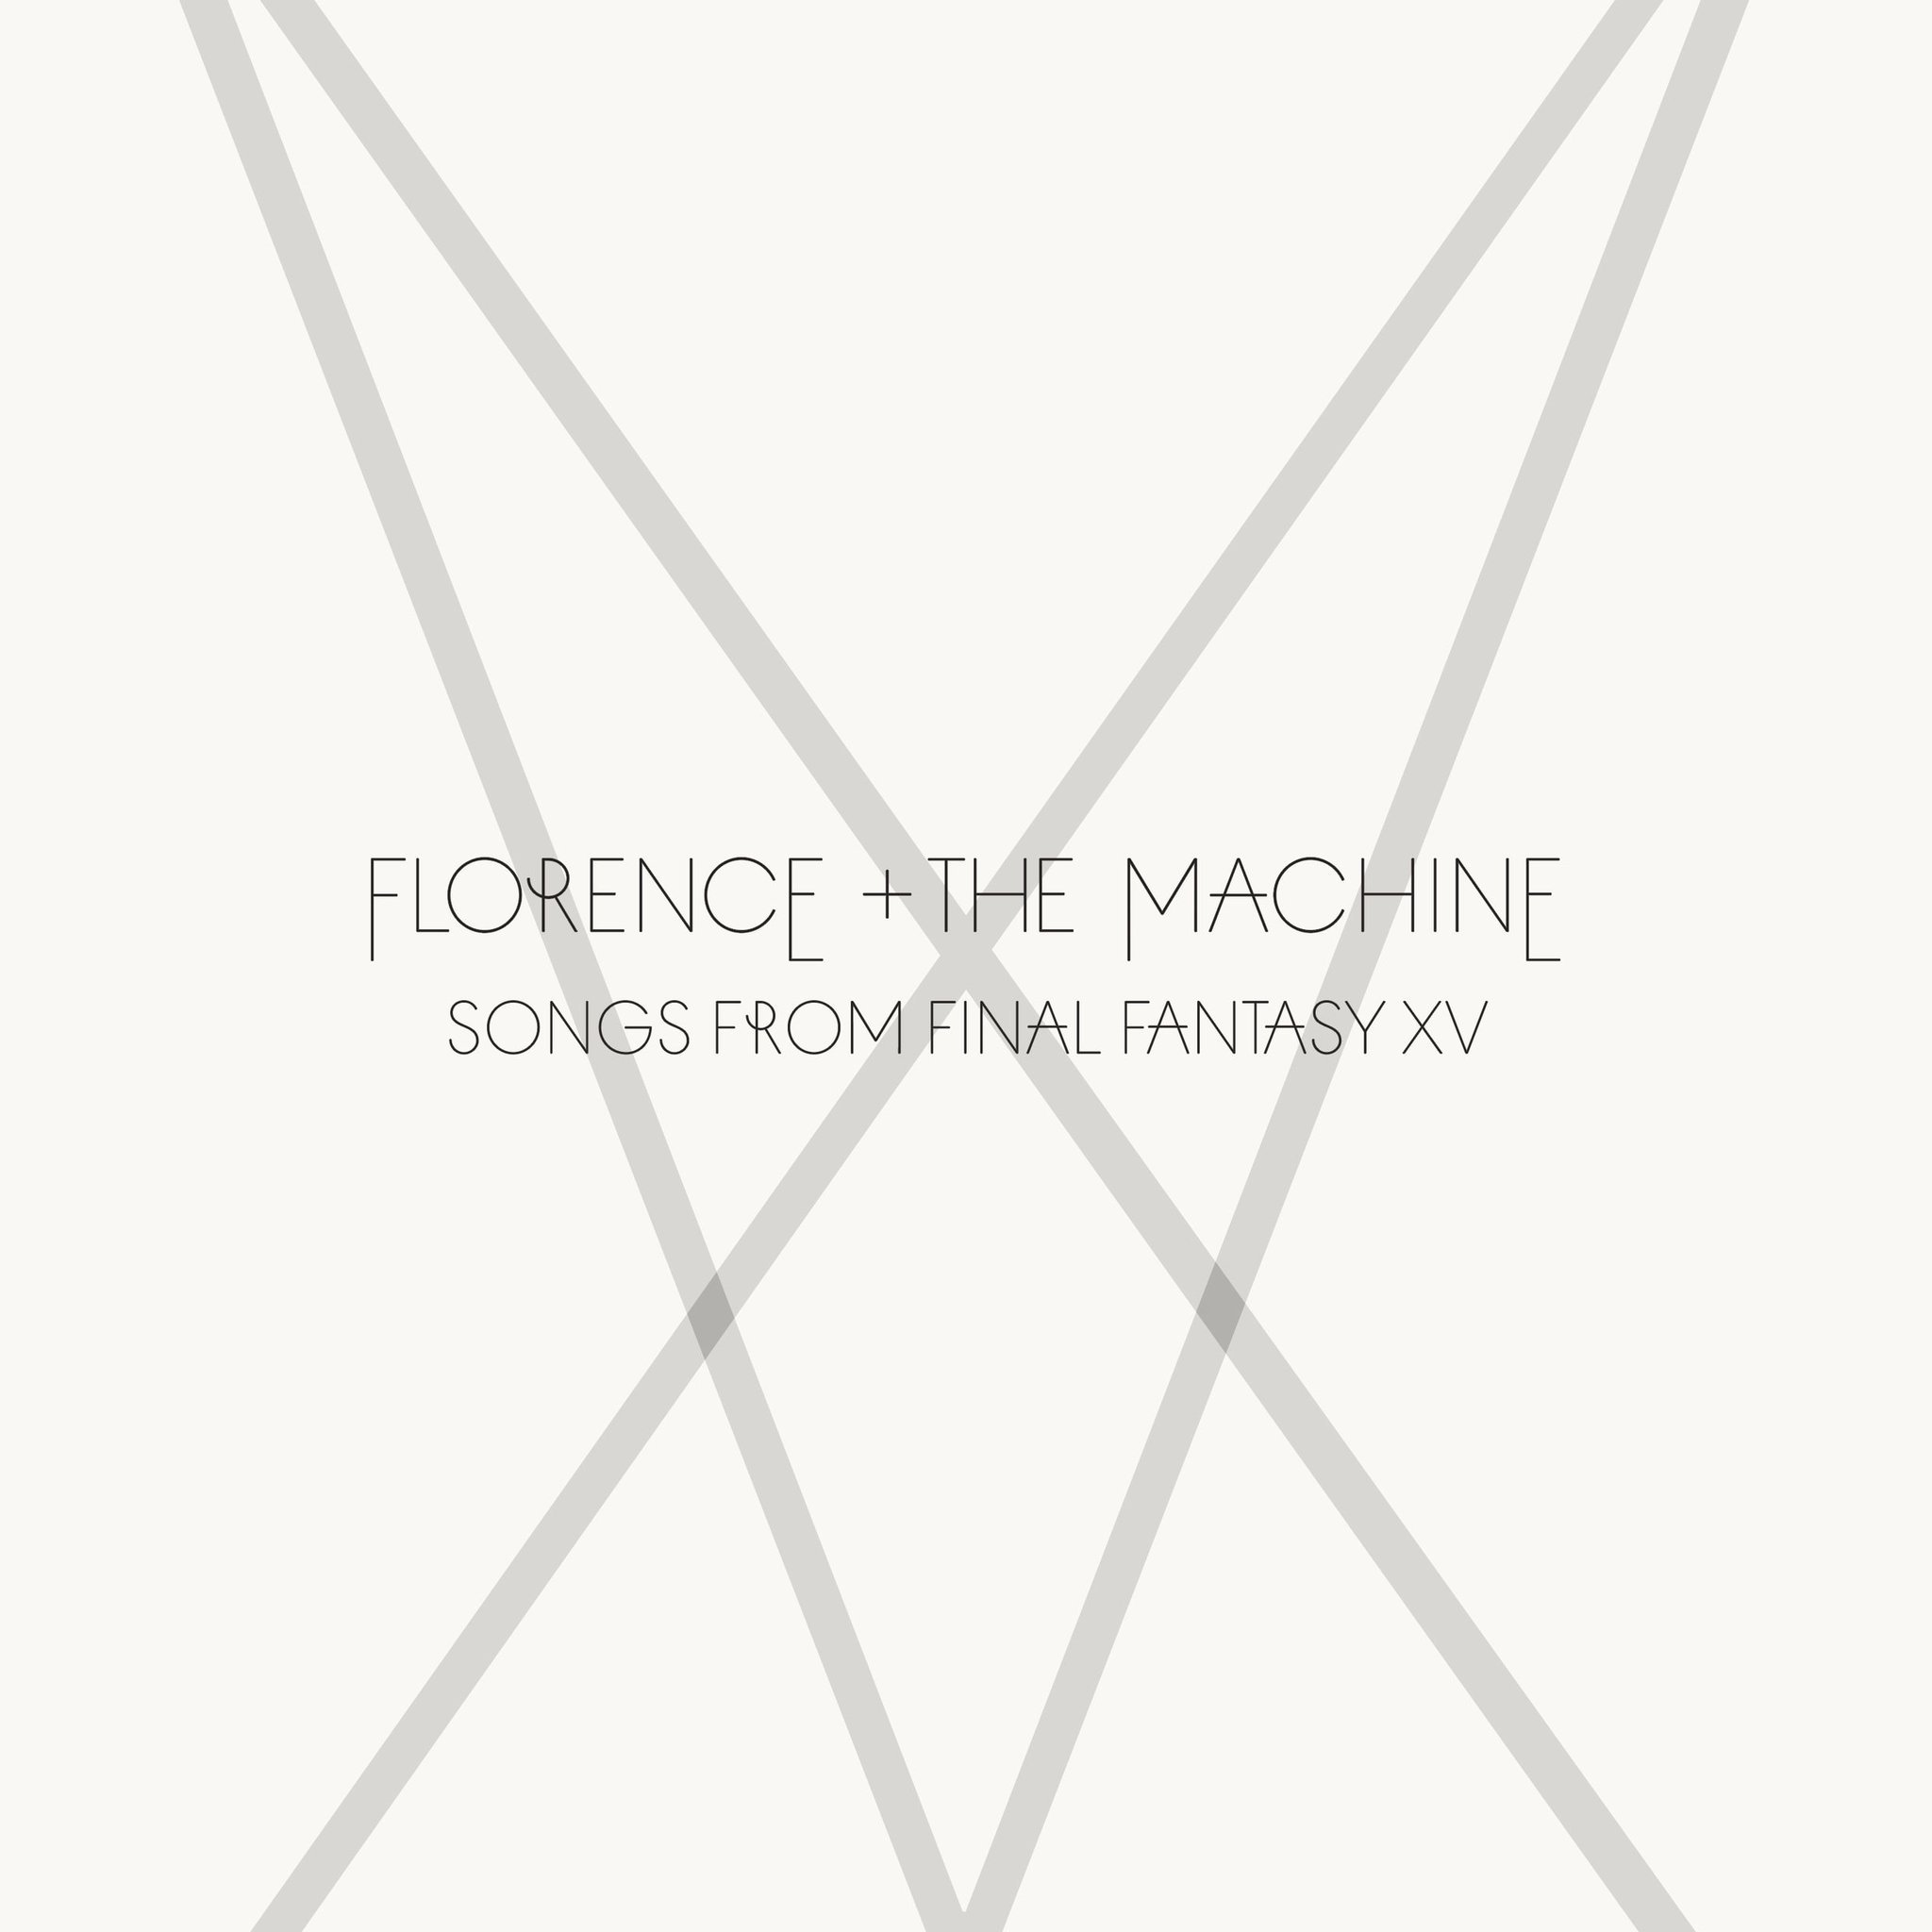 SongsfromFinal FantasyXVFlorence+ The Machine  Too Much Is Never Enough  Stand By Me  I Will Be